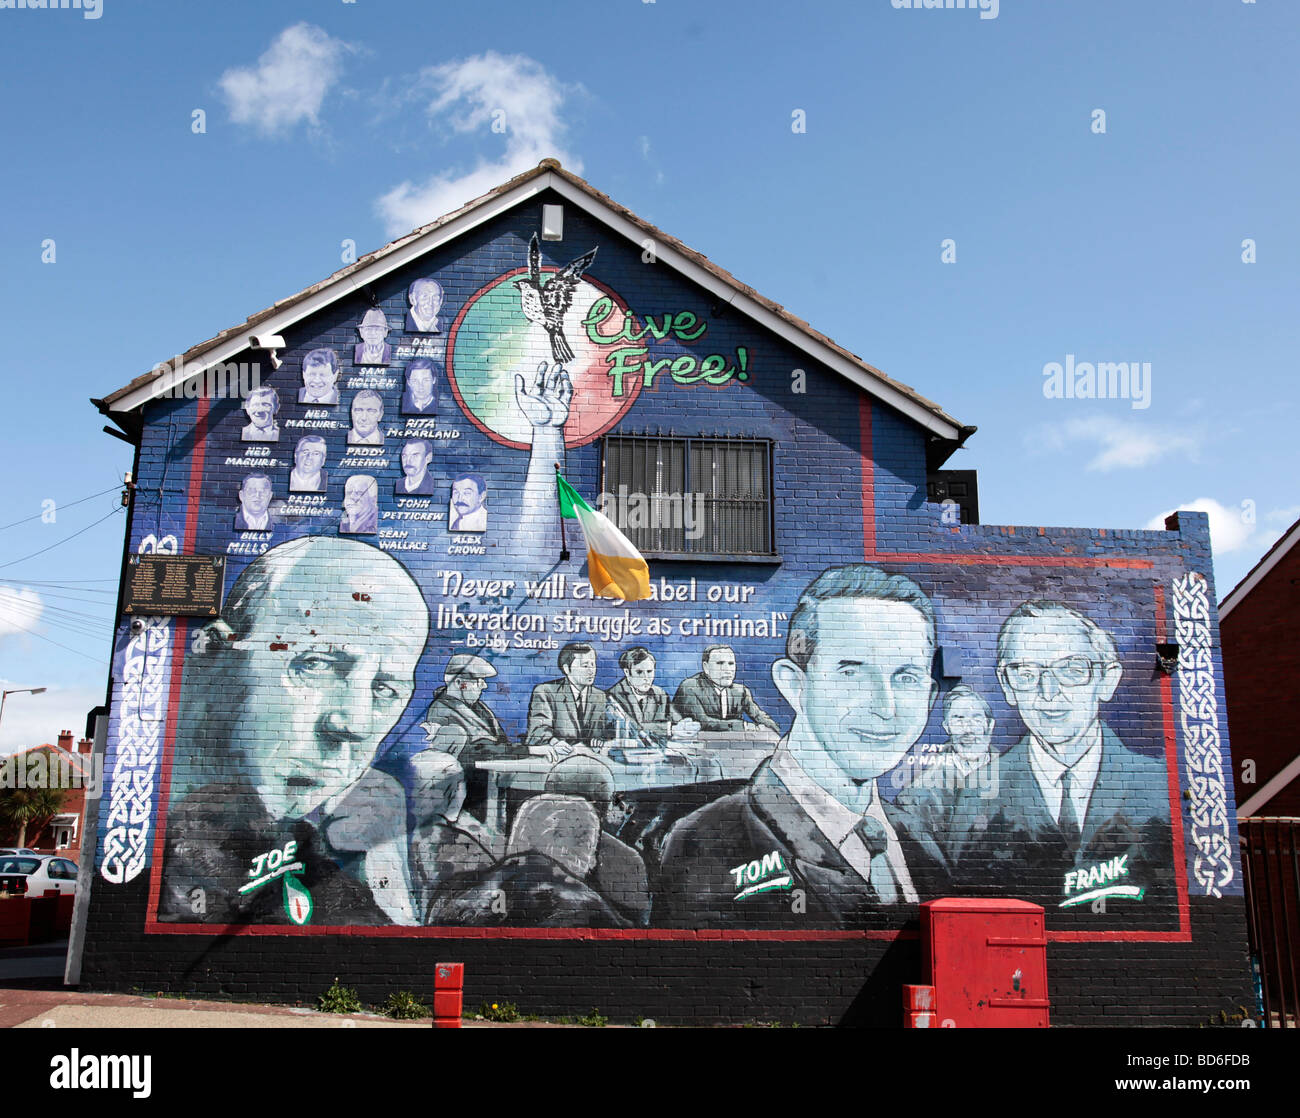 Mural for Joe Cahill and his brothers, painted by Danny Devenney in the Whiterock, Republican/Nationalist area of - Stock Image